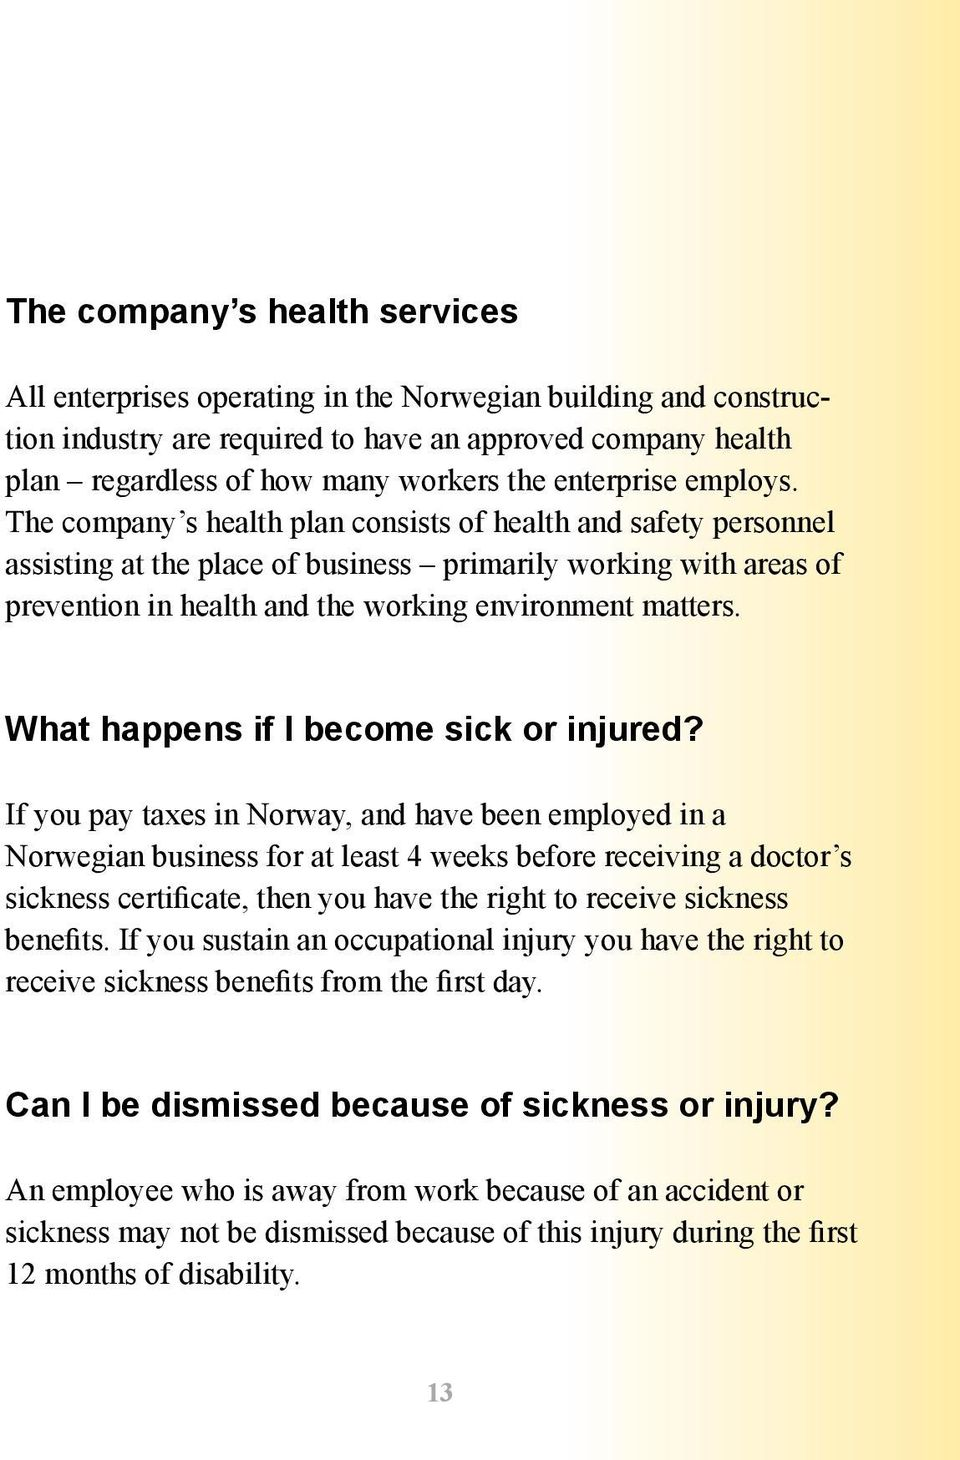 The company s health plan consists of health and safety personnel assisting at the place of business primarily working with areas of prevention in health and the working environment matters.